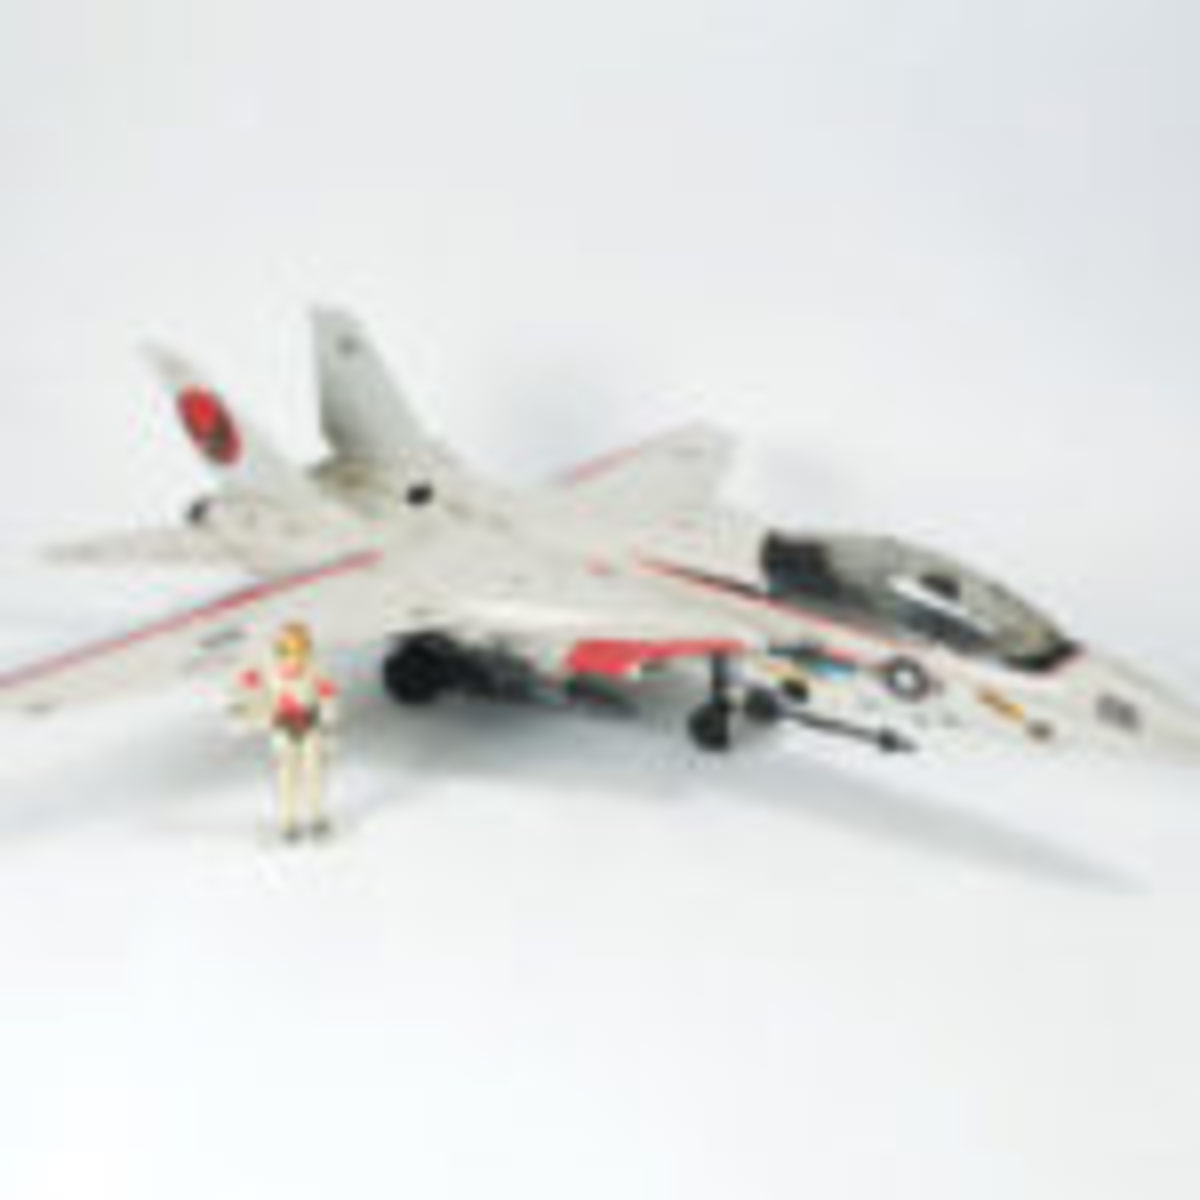 Skystriker (XP-14F), a combat jet complete with two ejection seats, was the crown jewel of may G.I. Joe collectors. Released in 1983, Skystriker is based on the Northrop Grumman Corporation's F-14 Tomcat. A challenge to find, a Skystriker in Mint in Sealed Box condition can be worth as much as $2,200.